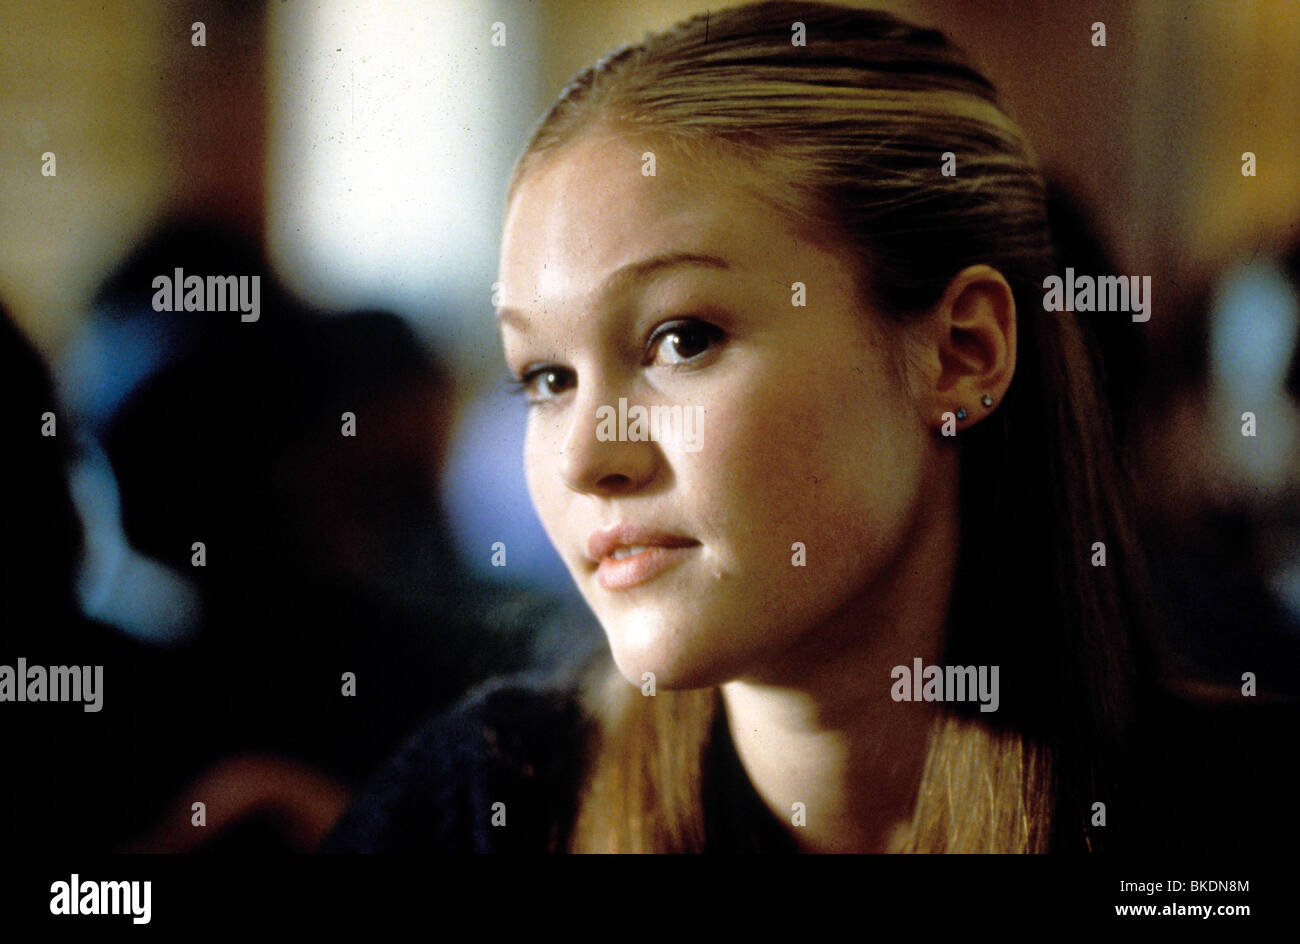 Pictures of julia stiles naked in save the last dance